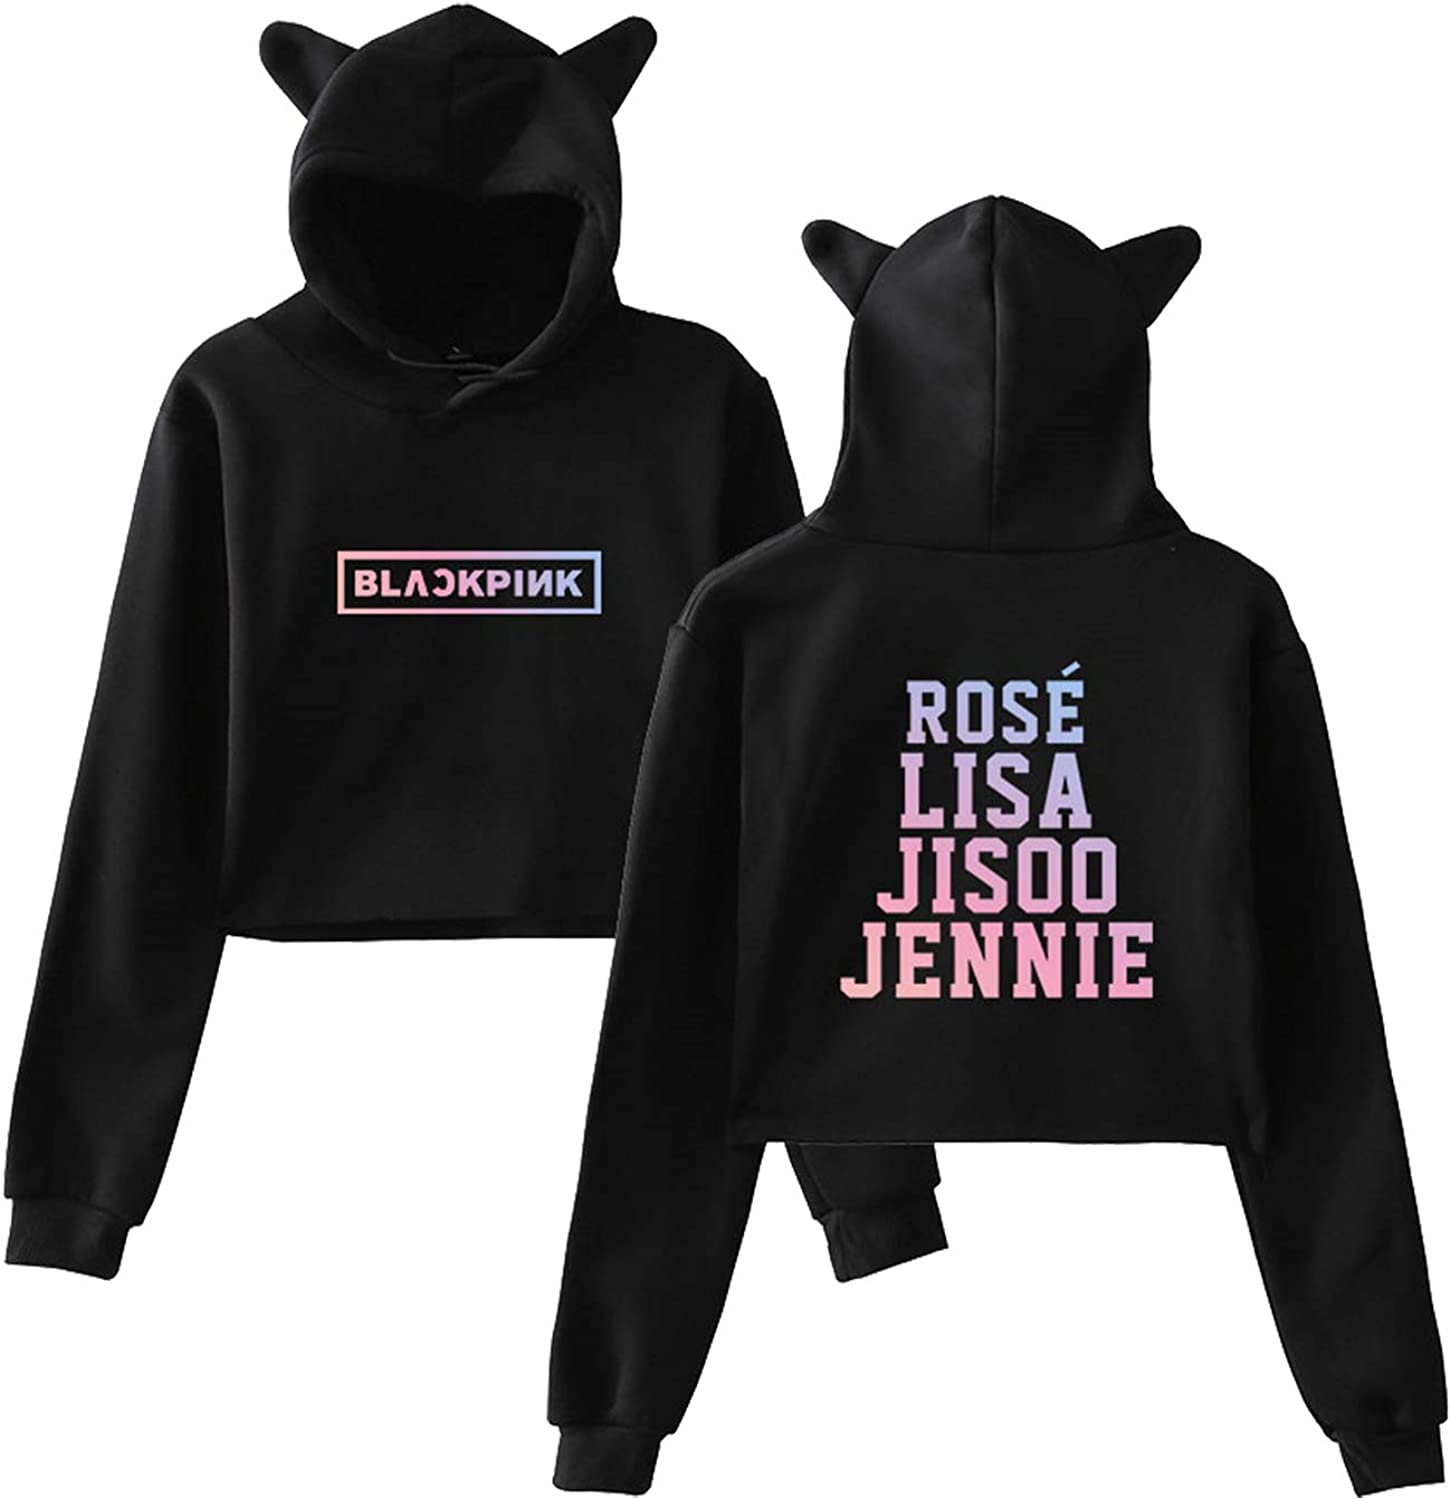 Xllife Kpop Blackpink Hoodie Crop Tops Lisa Rose Jisoo Jennie Sweater Jacket